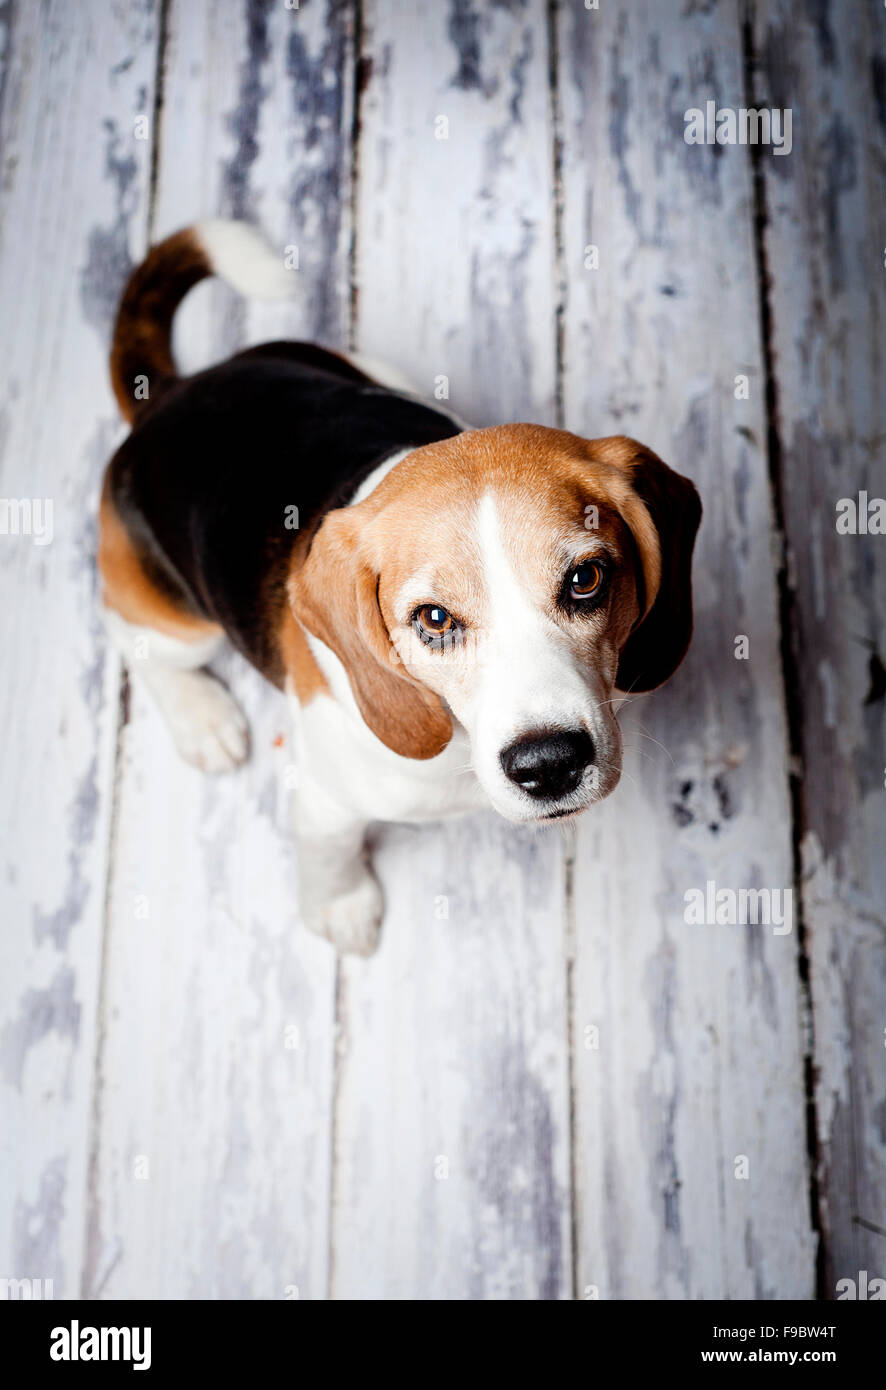 Cute hunting dog  portrait on wooden floor - Stock Image